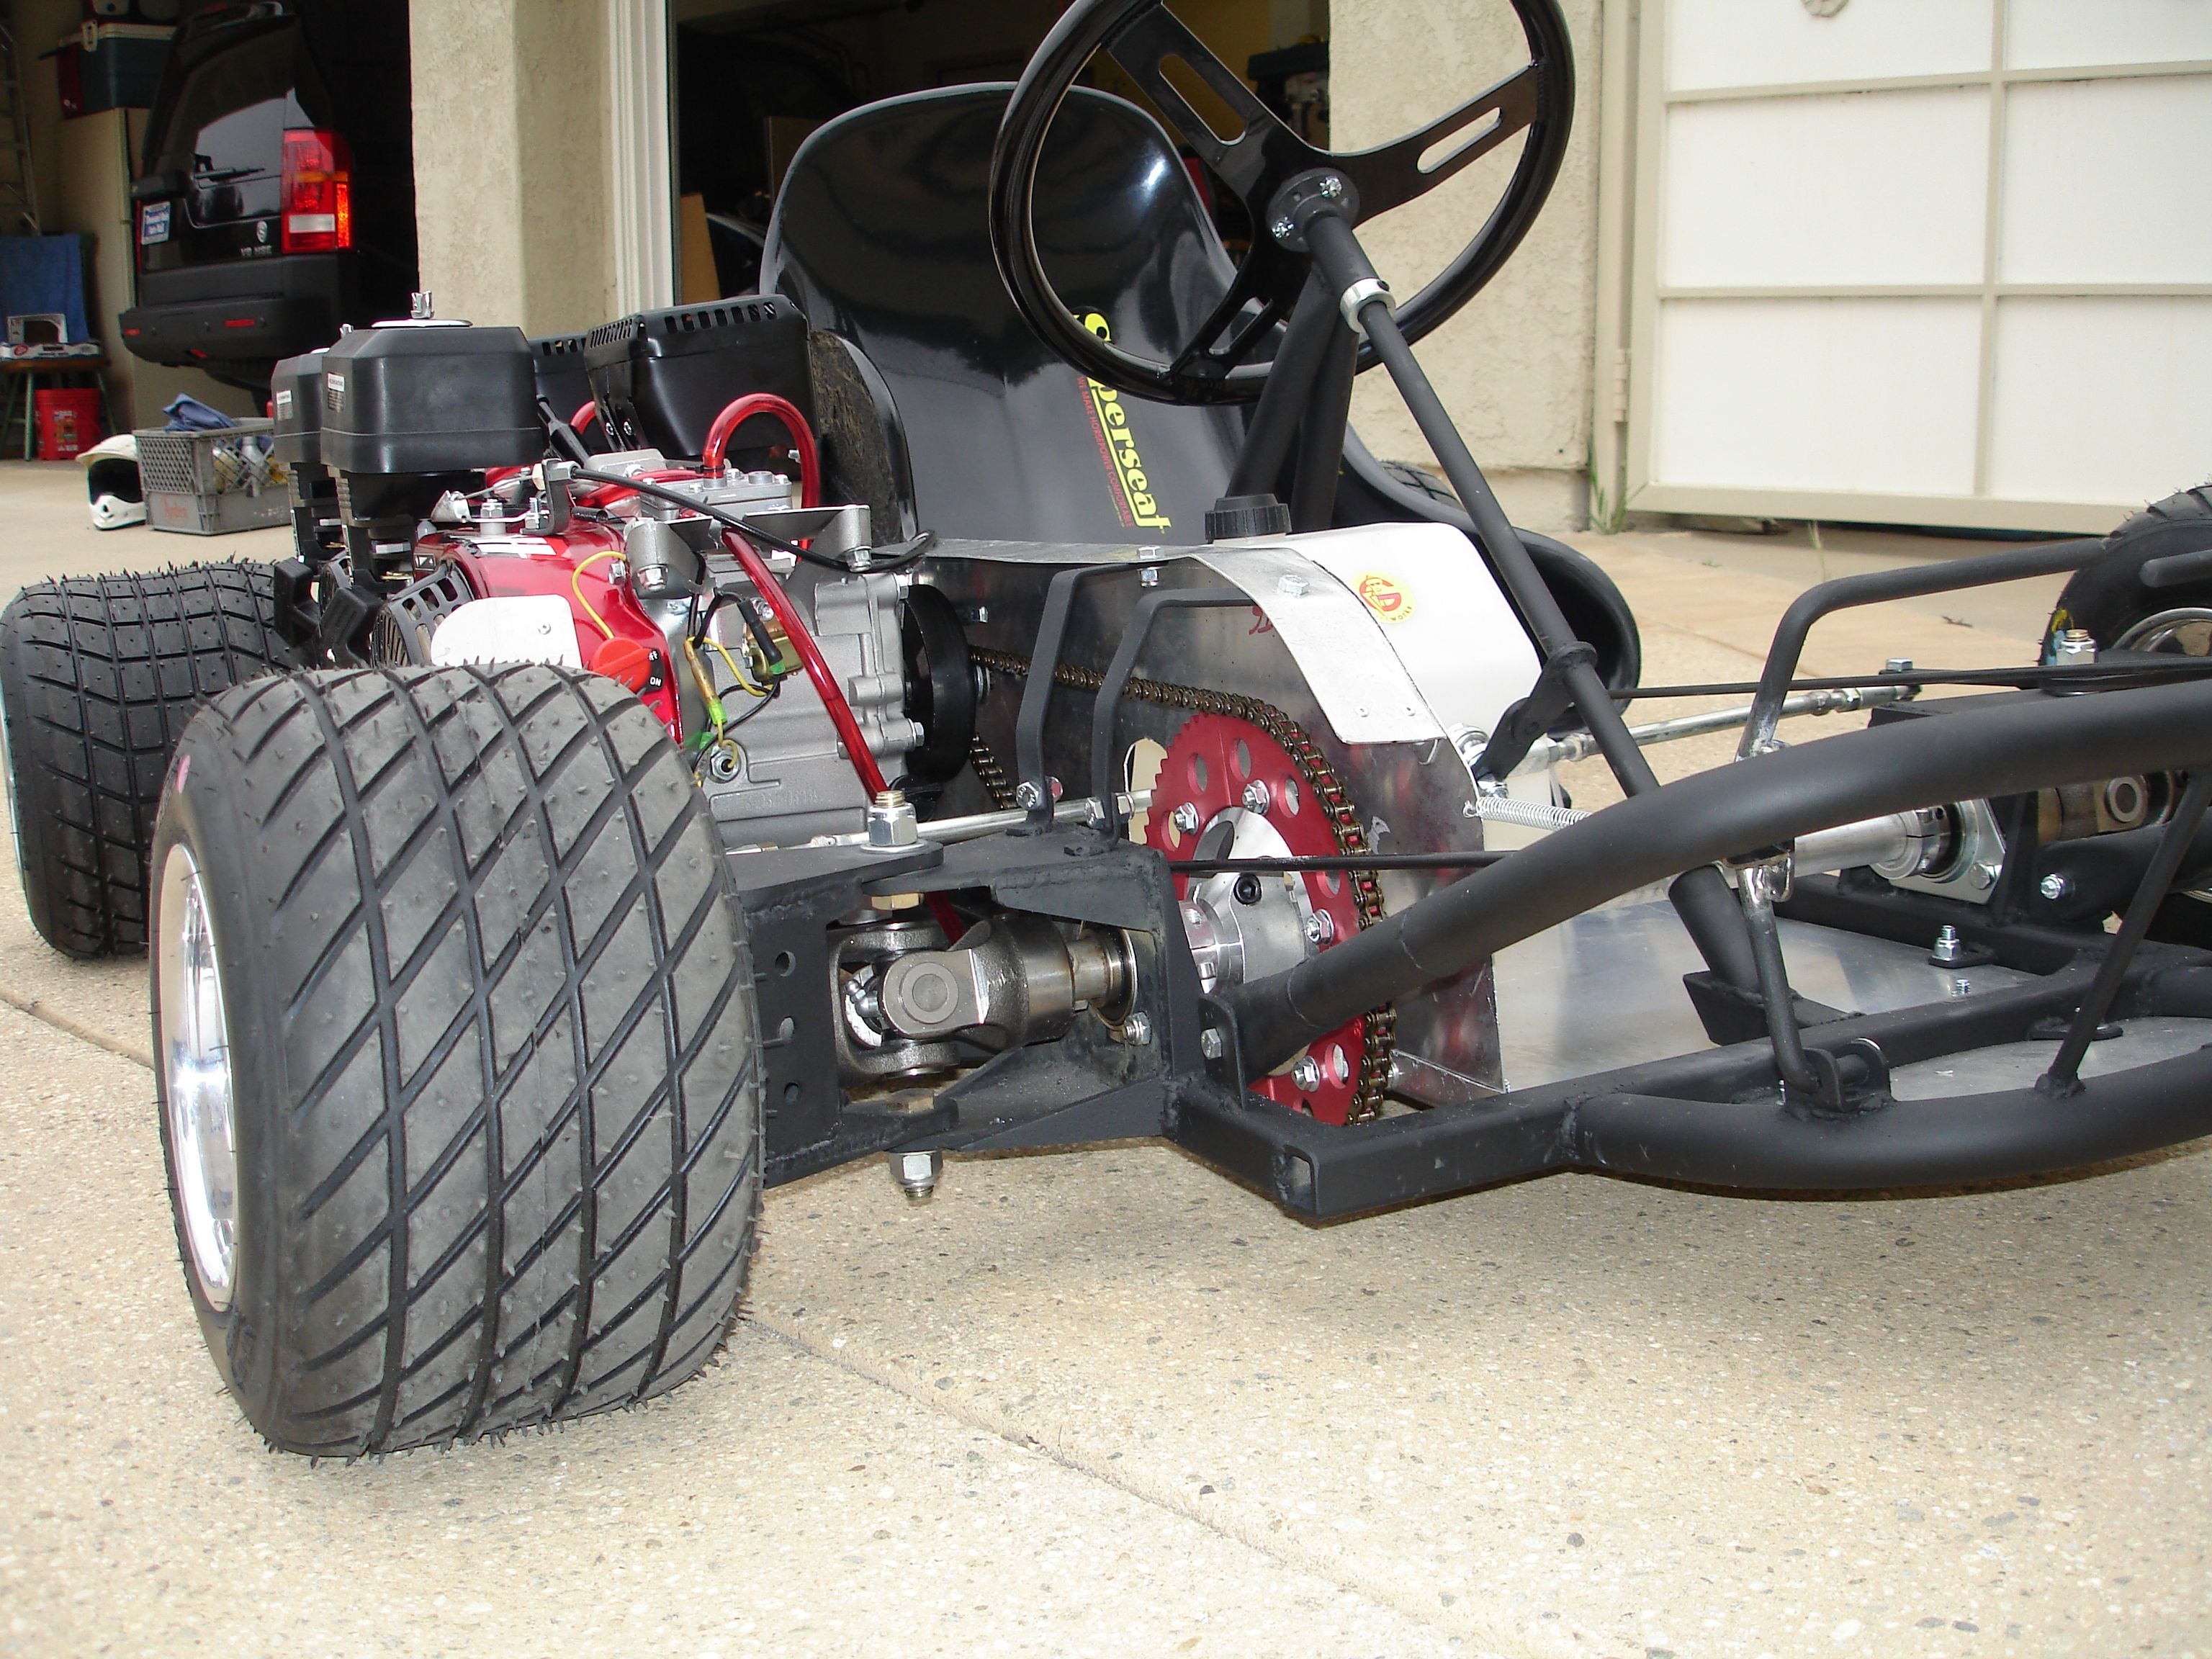 The first ever AWD go kart. We hope to see more attempts at this ...